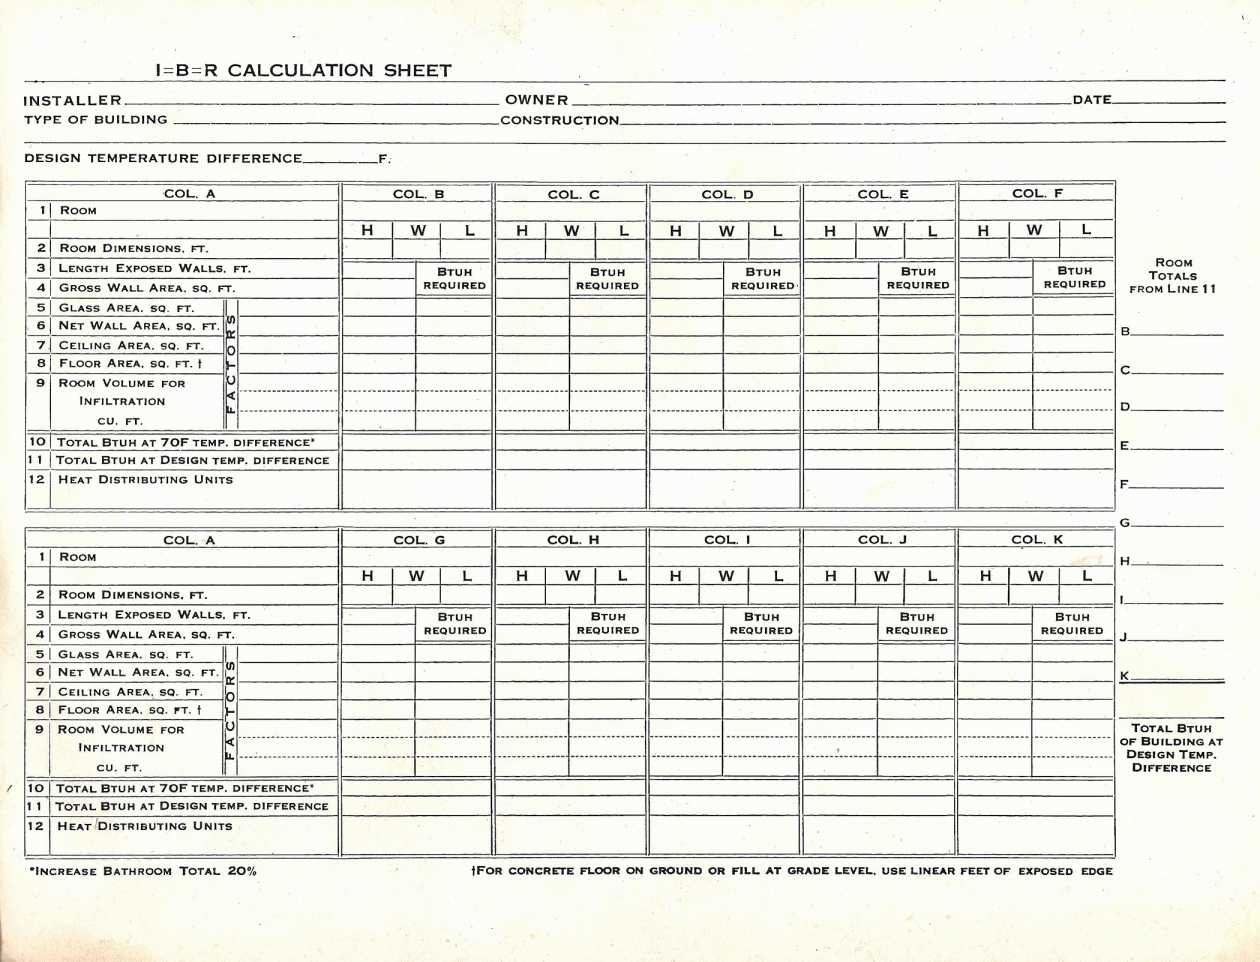 Axle Load Calculation Spreadsheet Intended For Heating Load Calculator Excel  Austinroofing Axle Load Calculation Spreadsheet Printable Spreadshee Printable Spreadshee axle load calculation spreadsheet